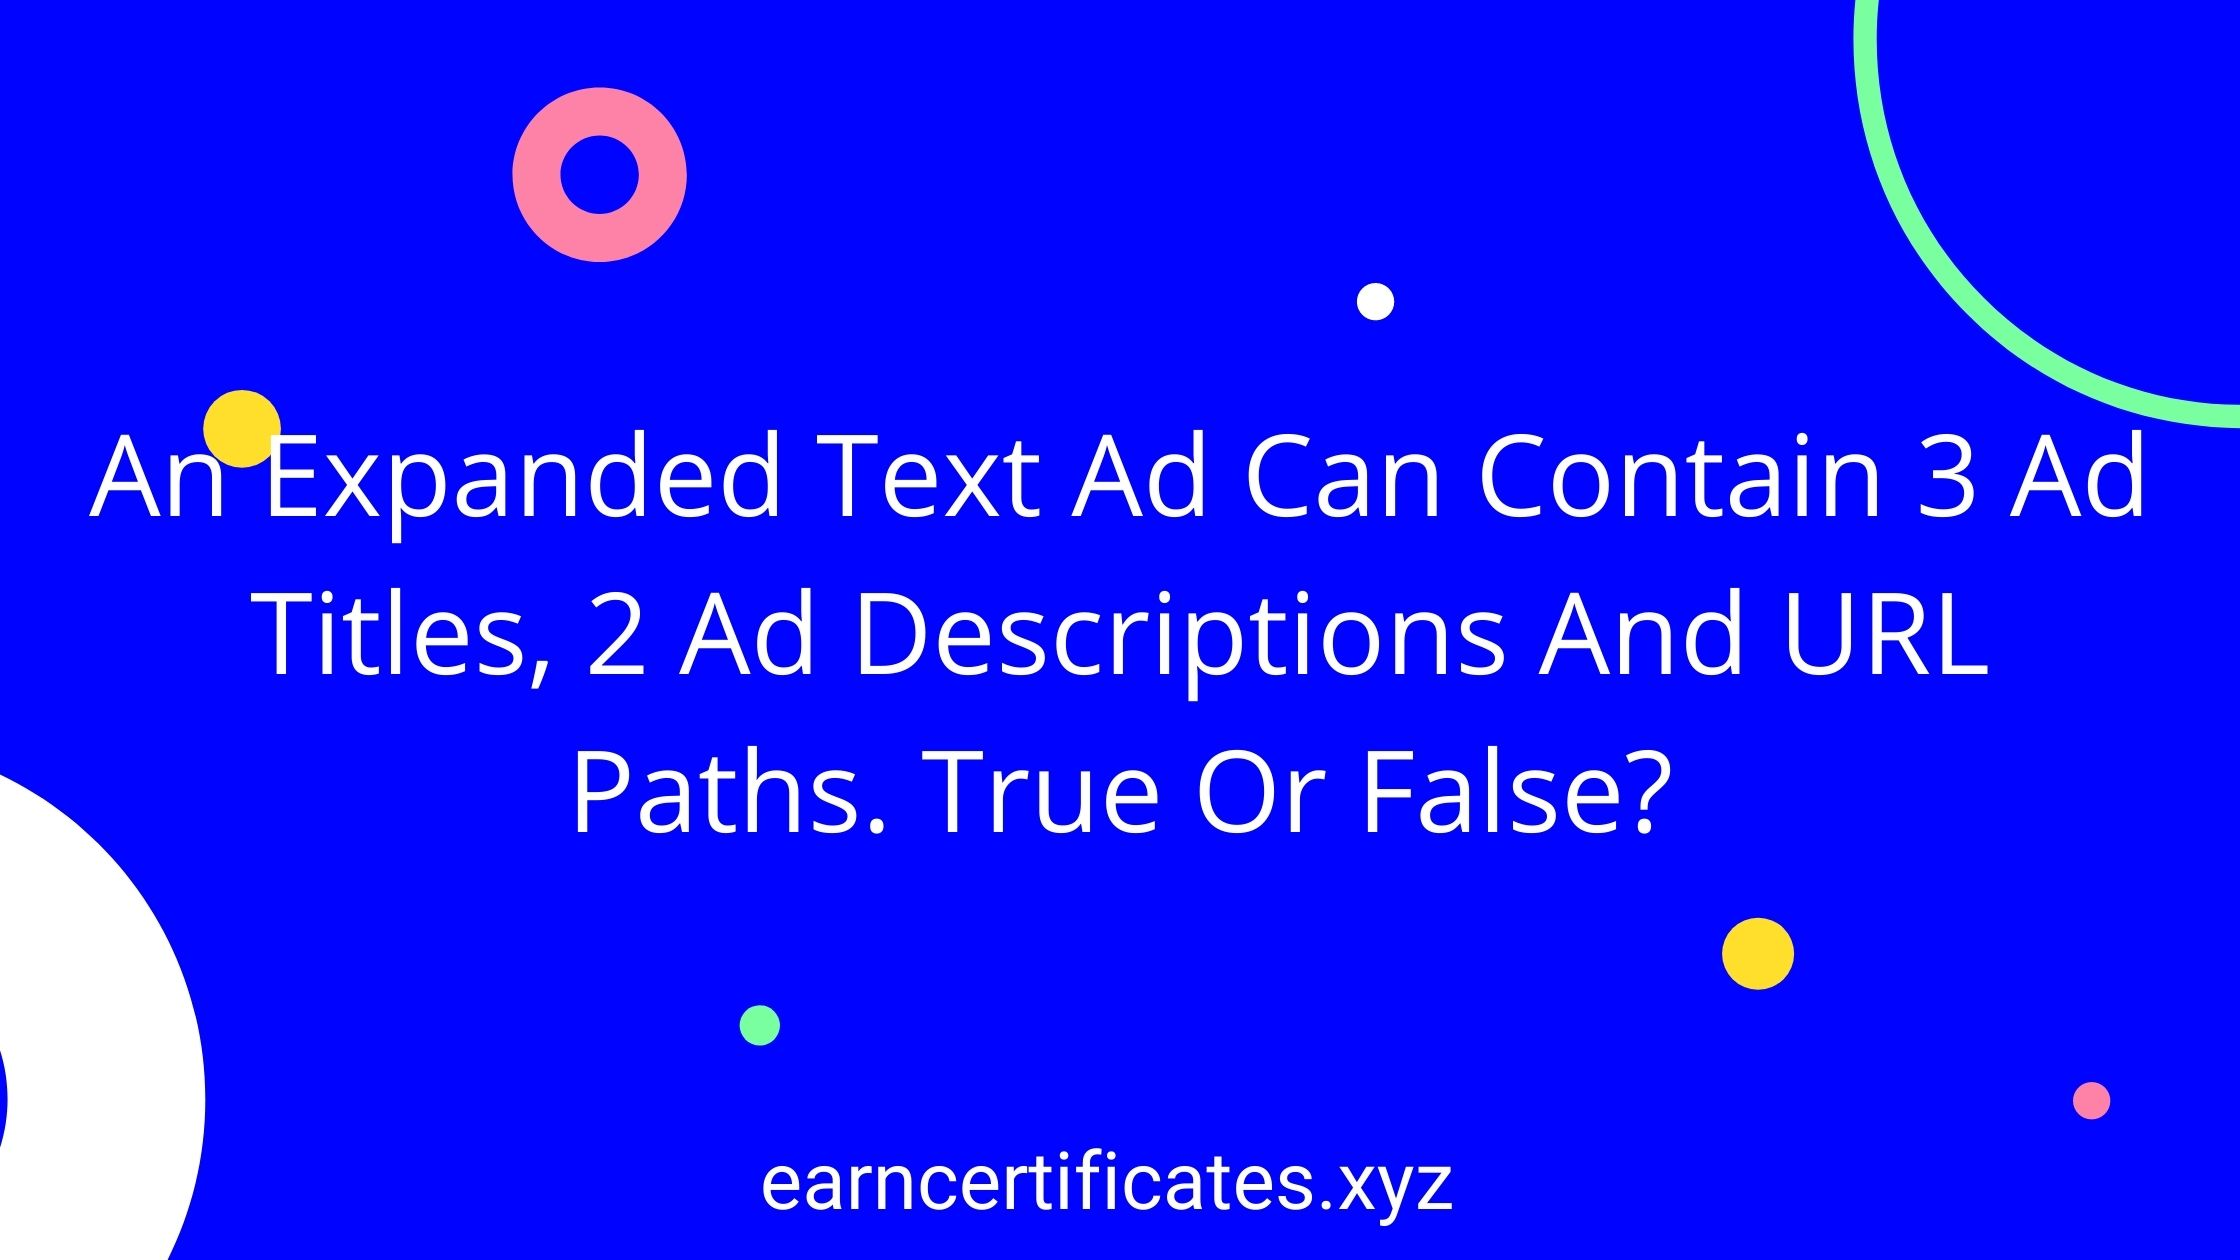 An Expanded Text Ad Can Contain 3 Ad Titles, 2 Ad Descriptions And URL Paths. True Or False?